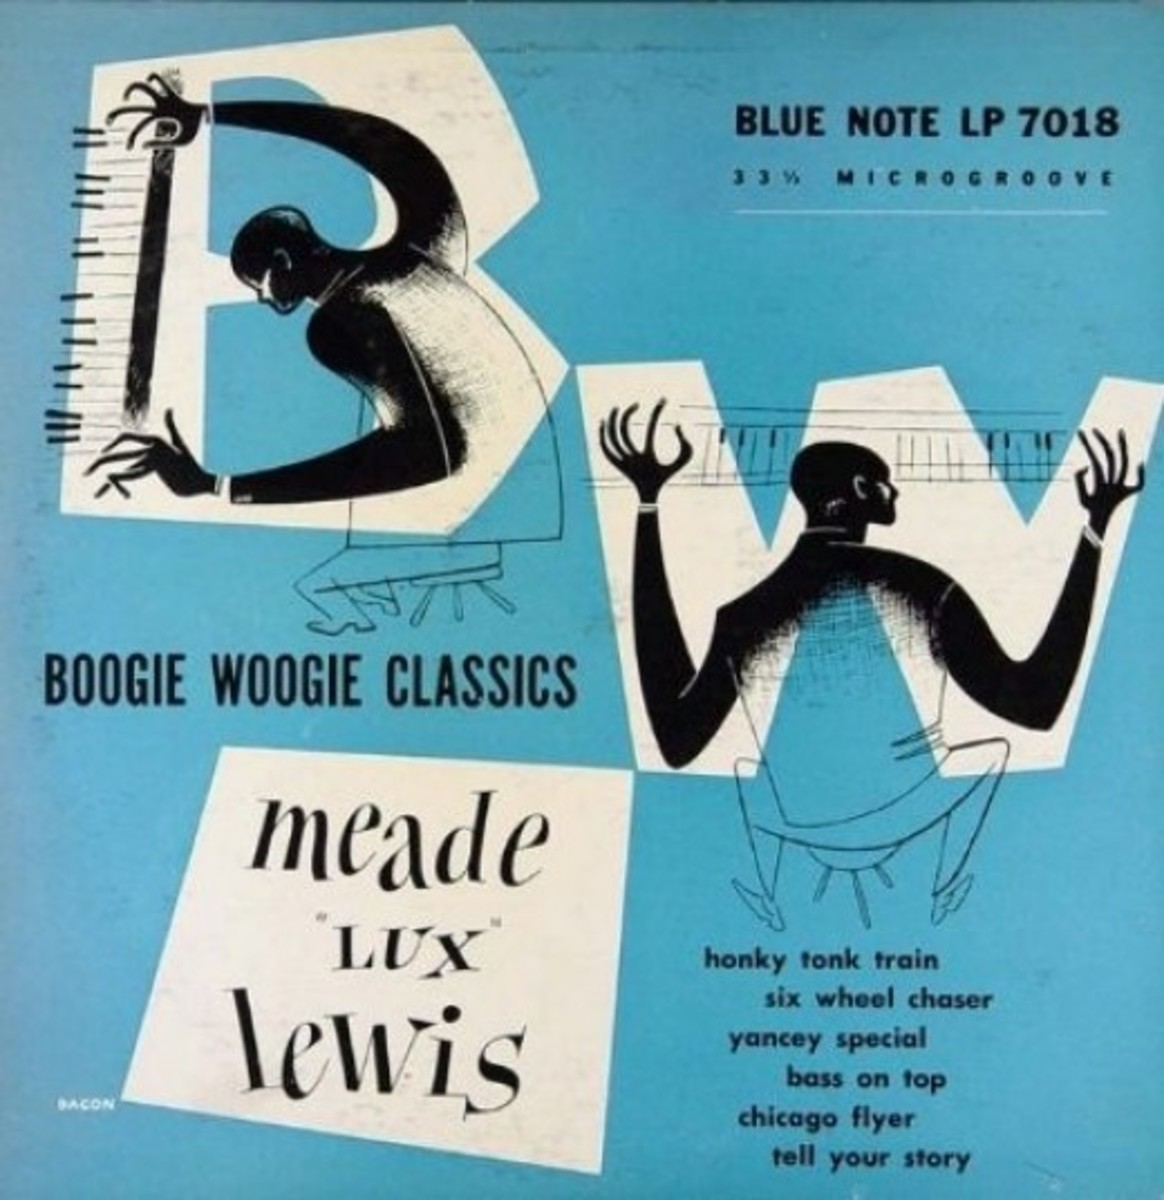 """Meade Lux Lewis """"Boogie Woogie Classics"""" Blue Note Records BLP 7018 10"""" LP Vinyl Microgroove Record (1951) Album Cover Art & Design by Paul Bacon"""